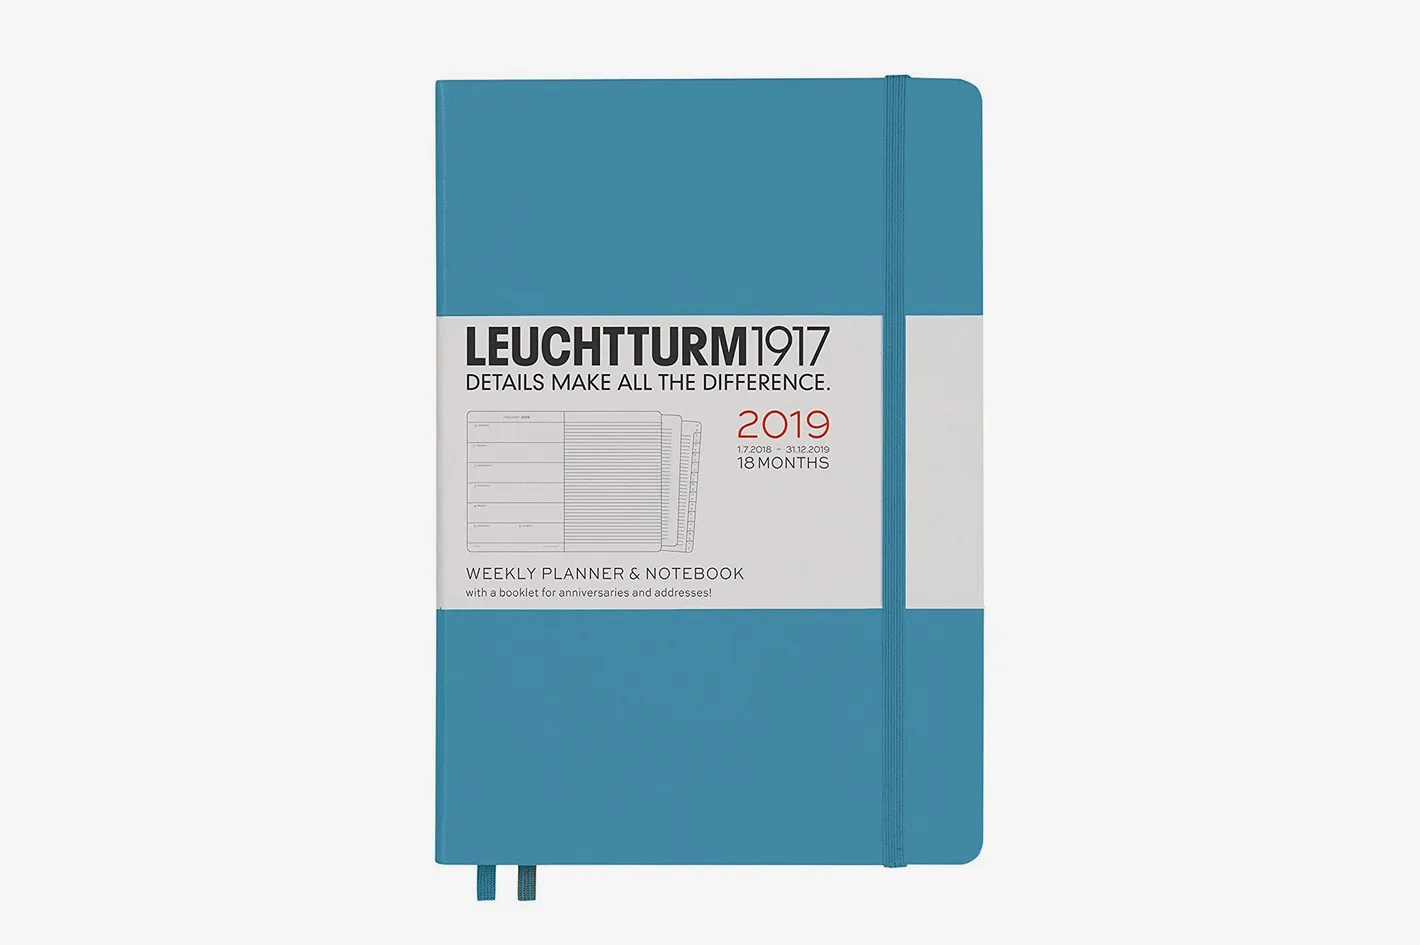 Mini Küche Online Planen 10 Best Planners For 2019 According To Productivity Experts